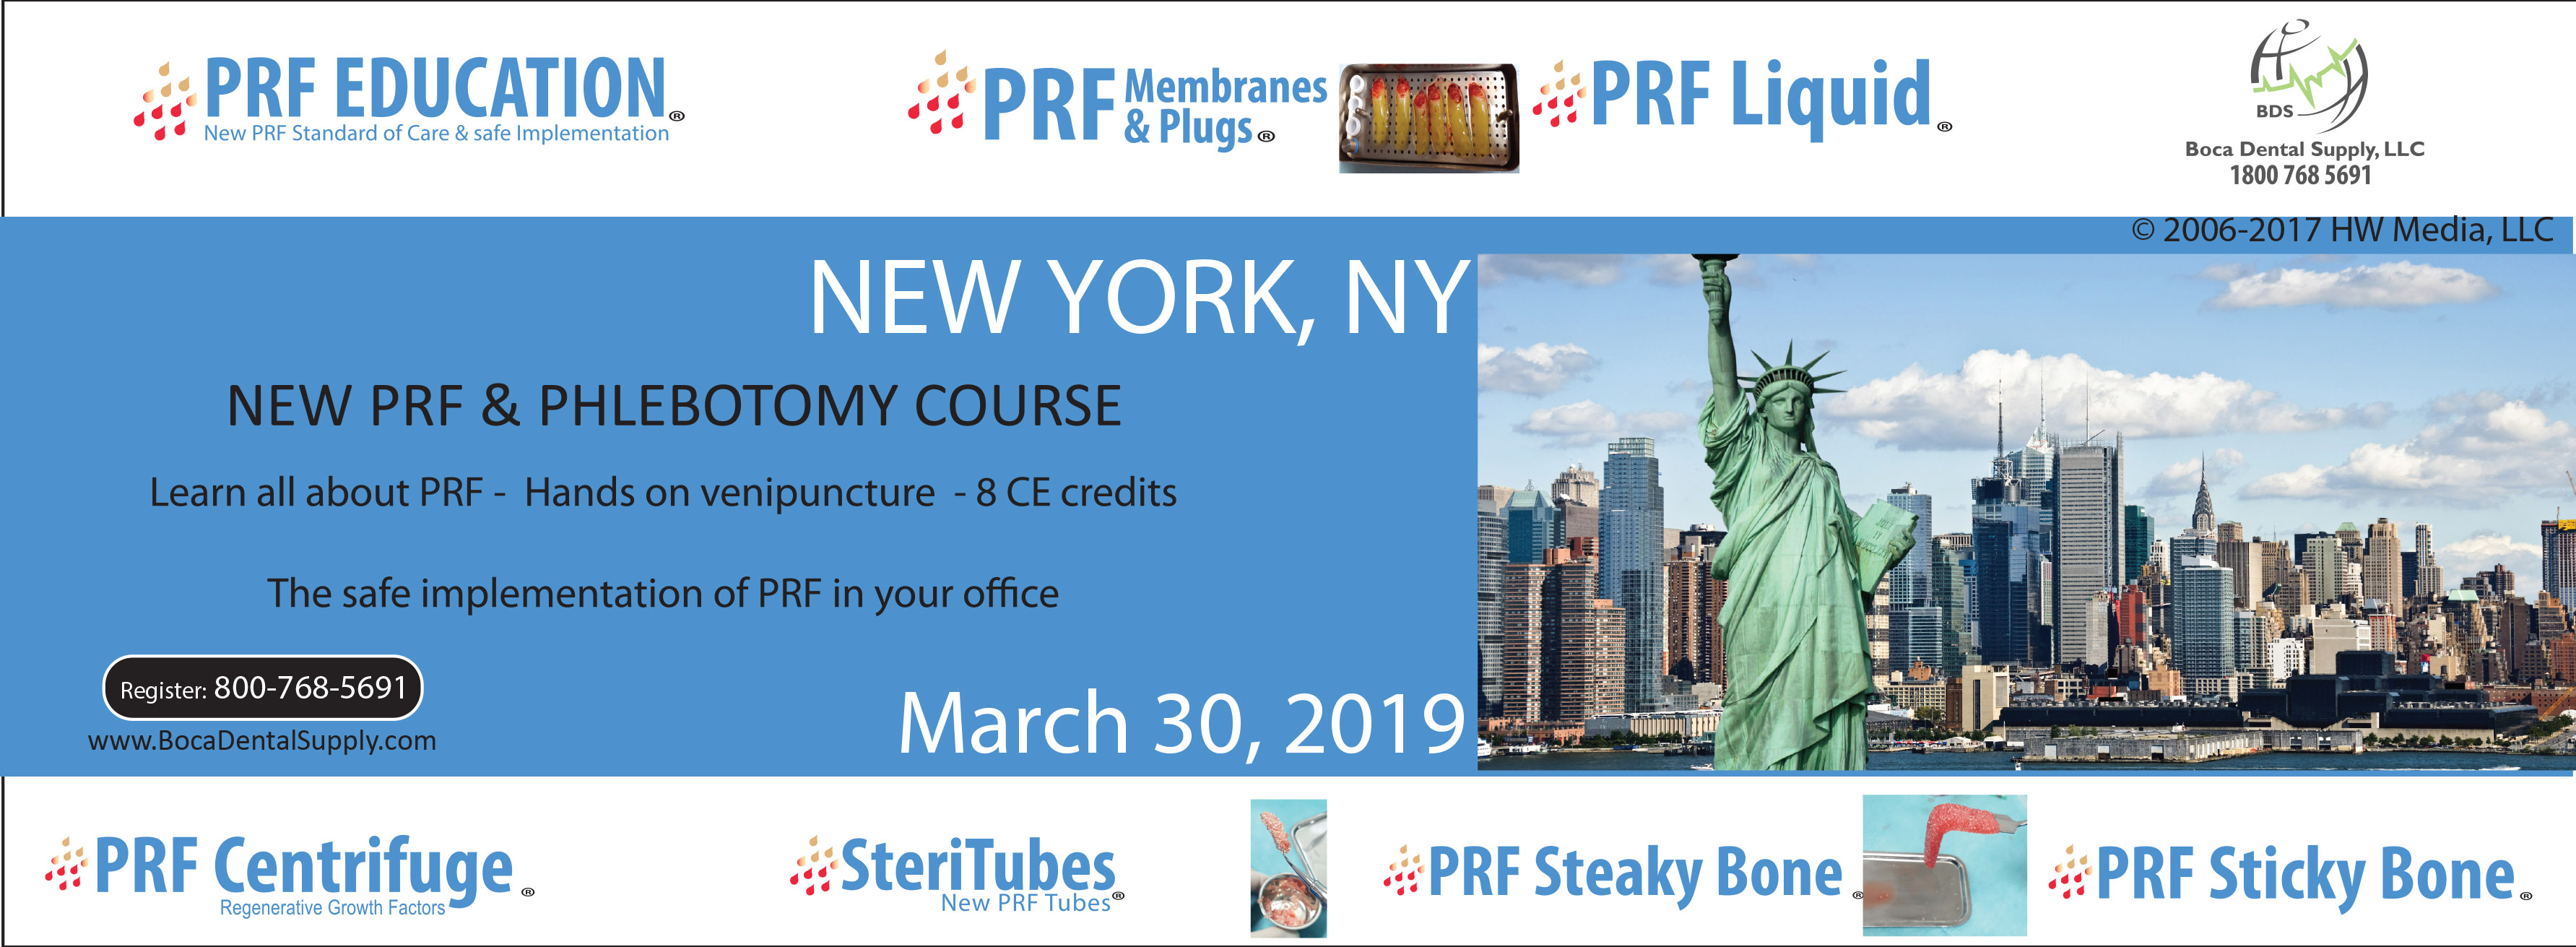 prf-course-ny-2019-updated.jpg